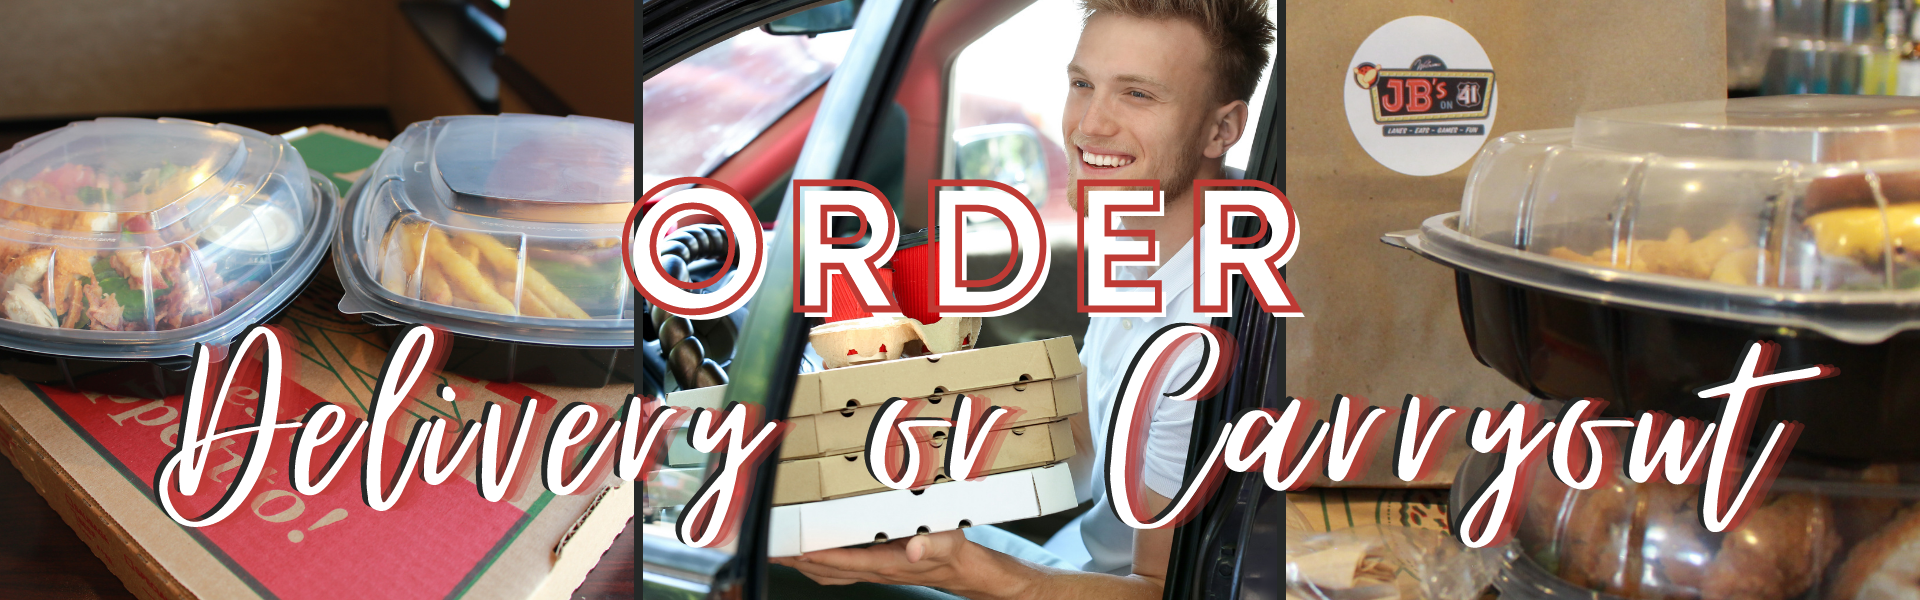 carryout and delivery | jb's on 41 | not your average bowling alley food